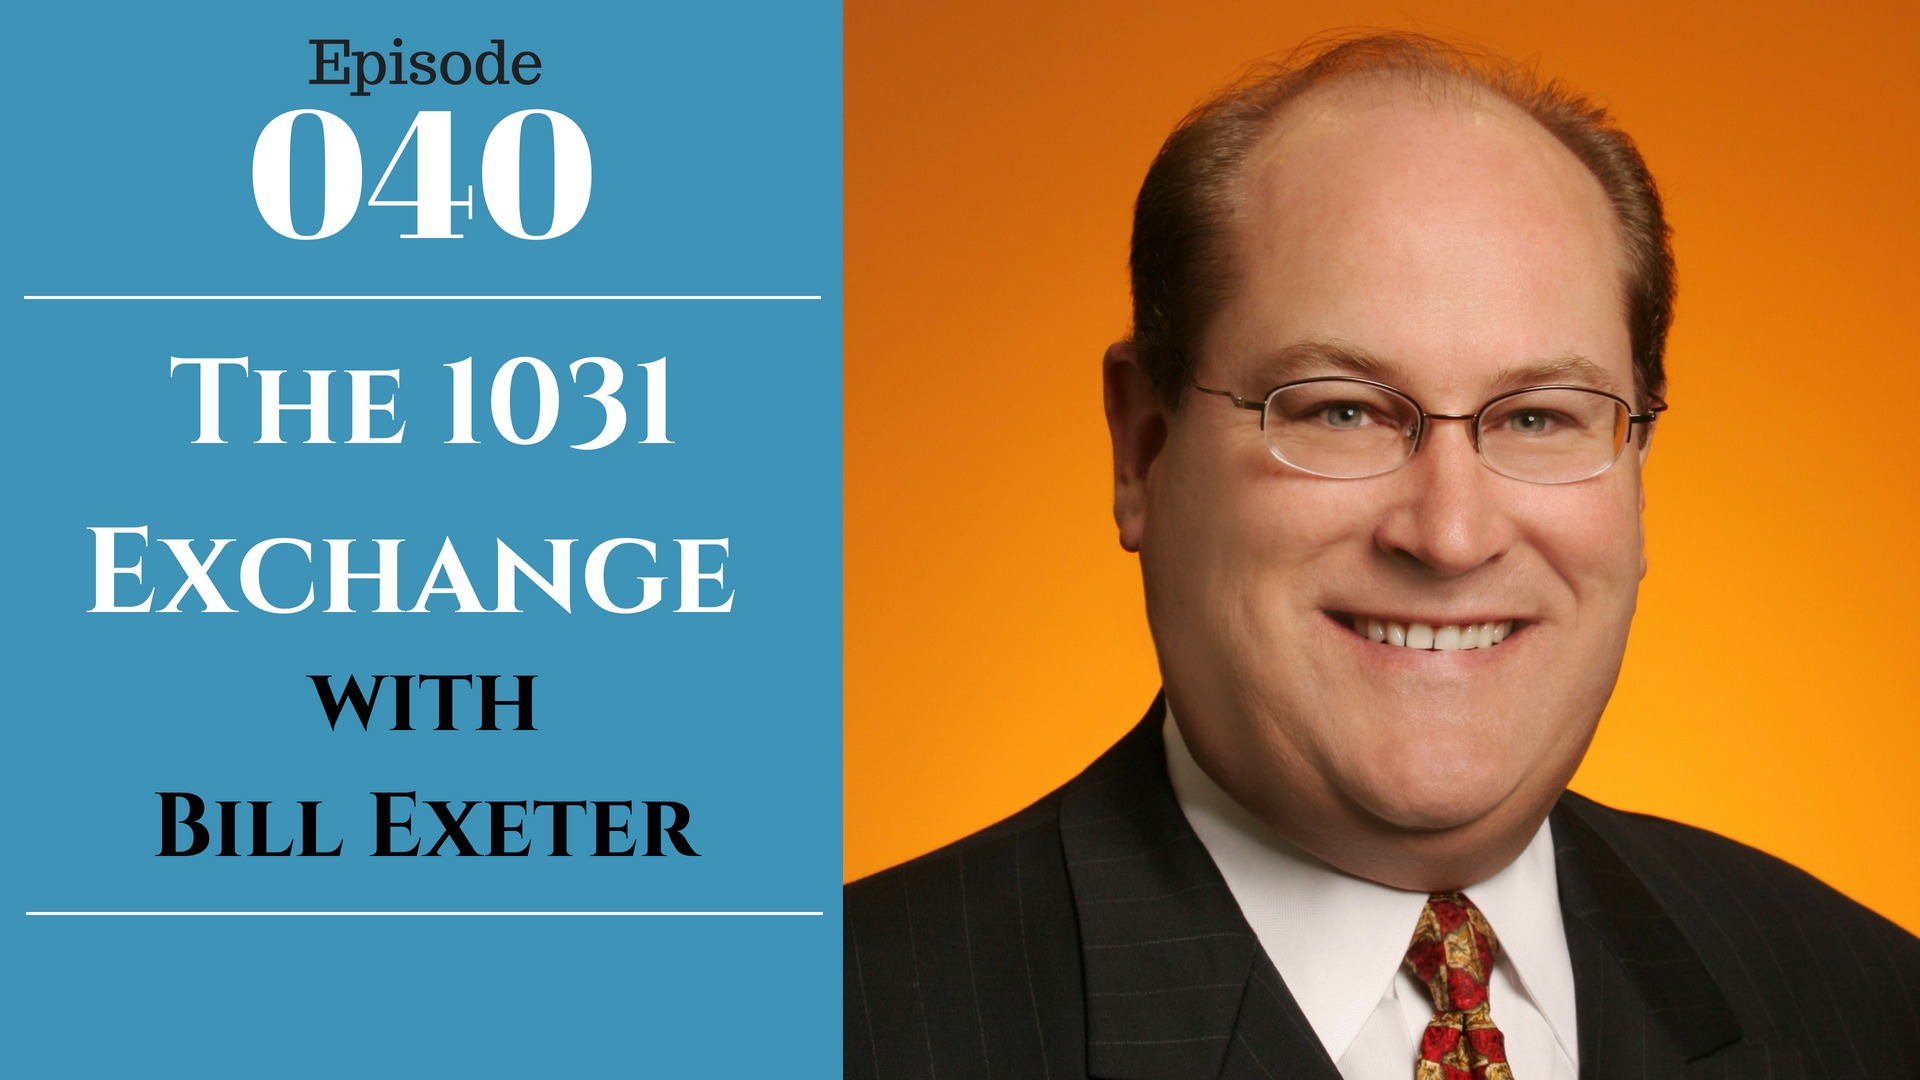 SIC 040: The 1031 Exchange with Bill Exeter hosted by Julie Clark and Joe Bauer